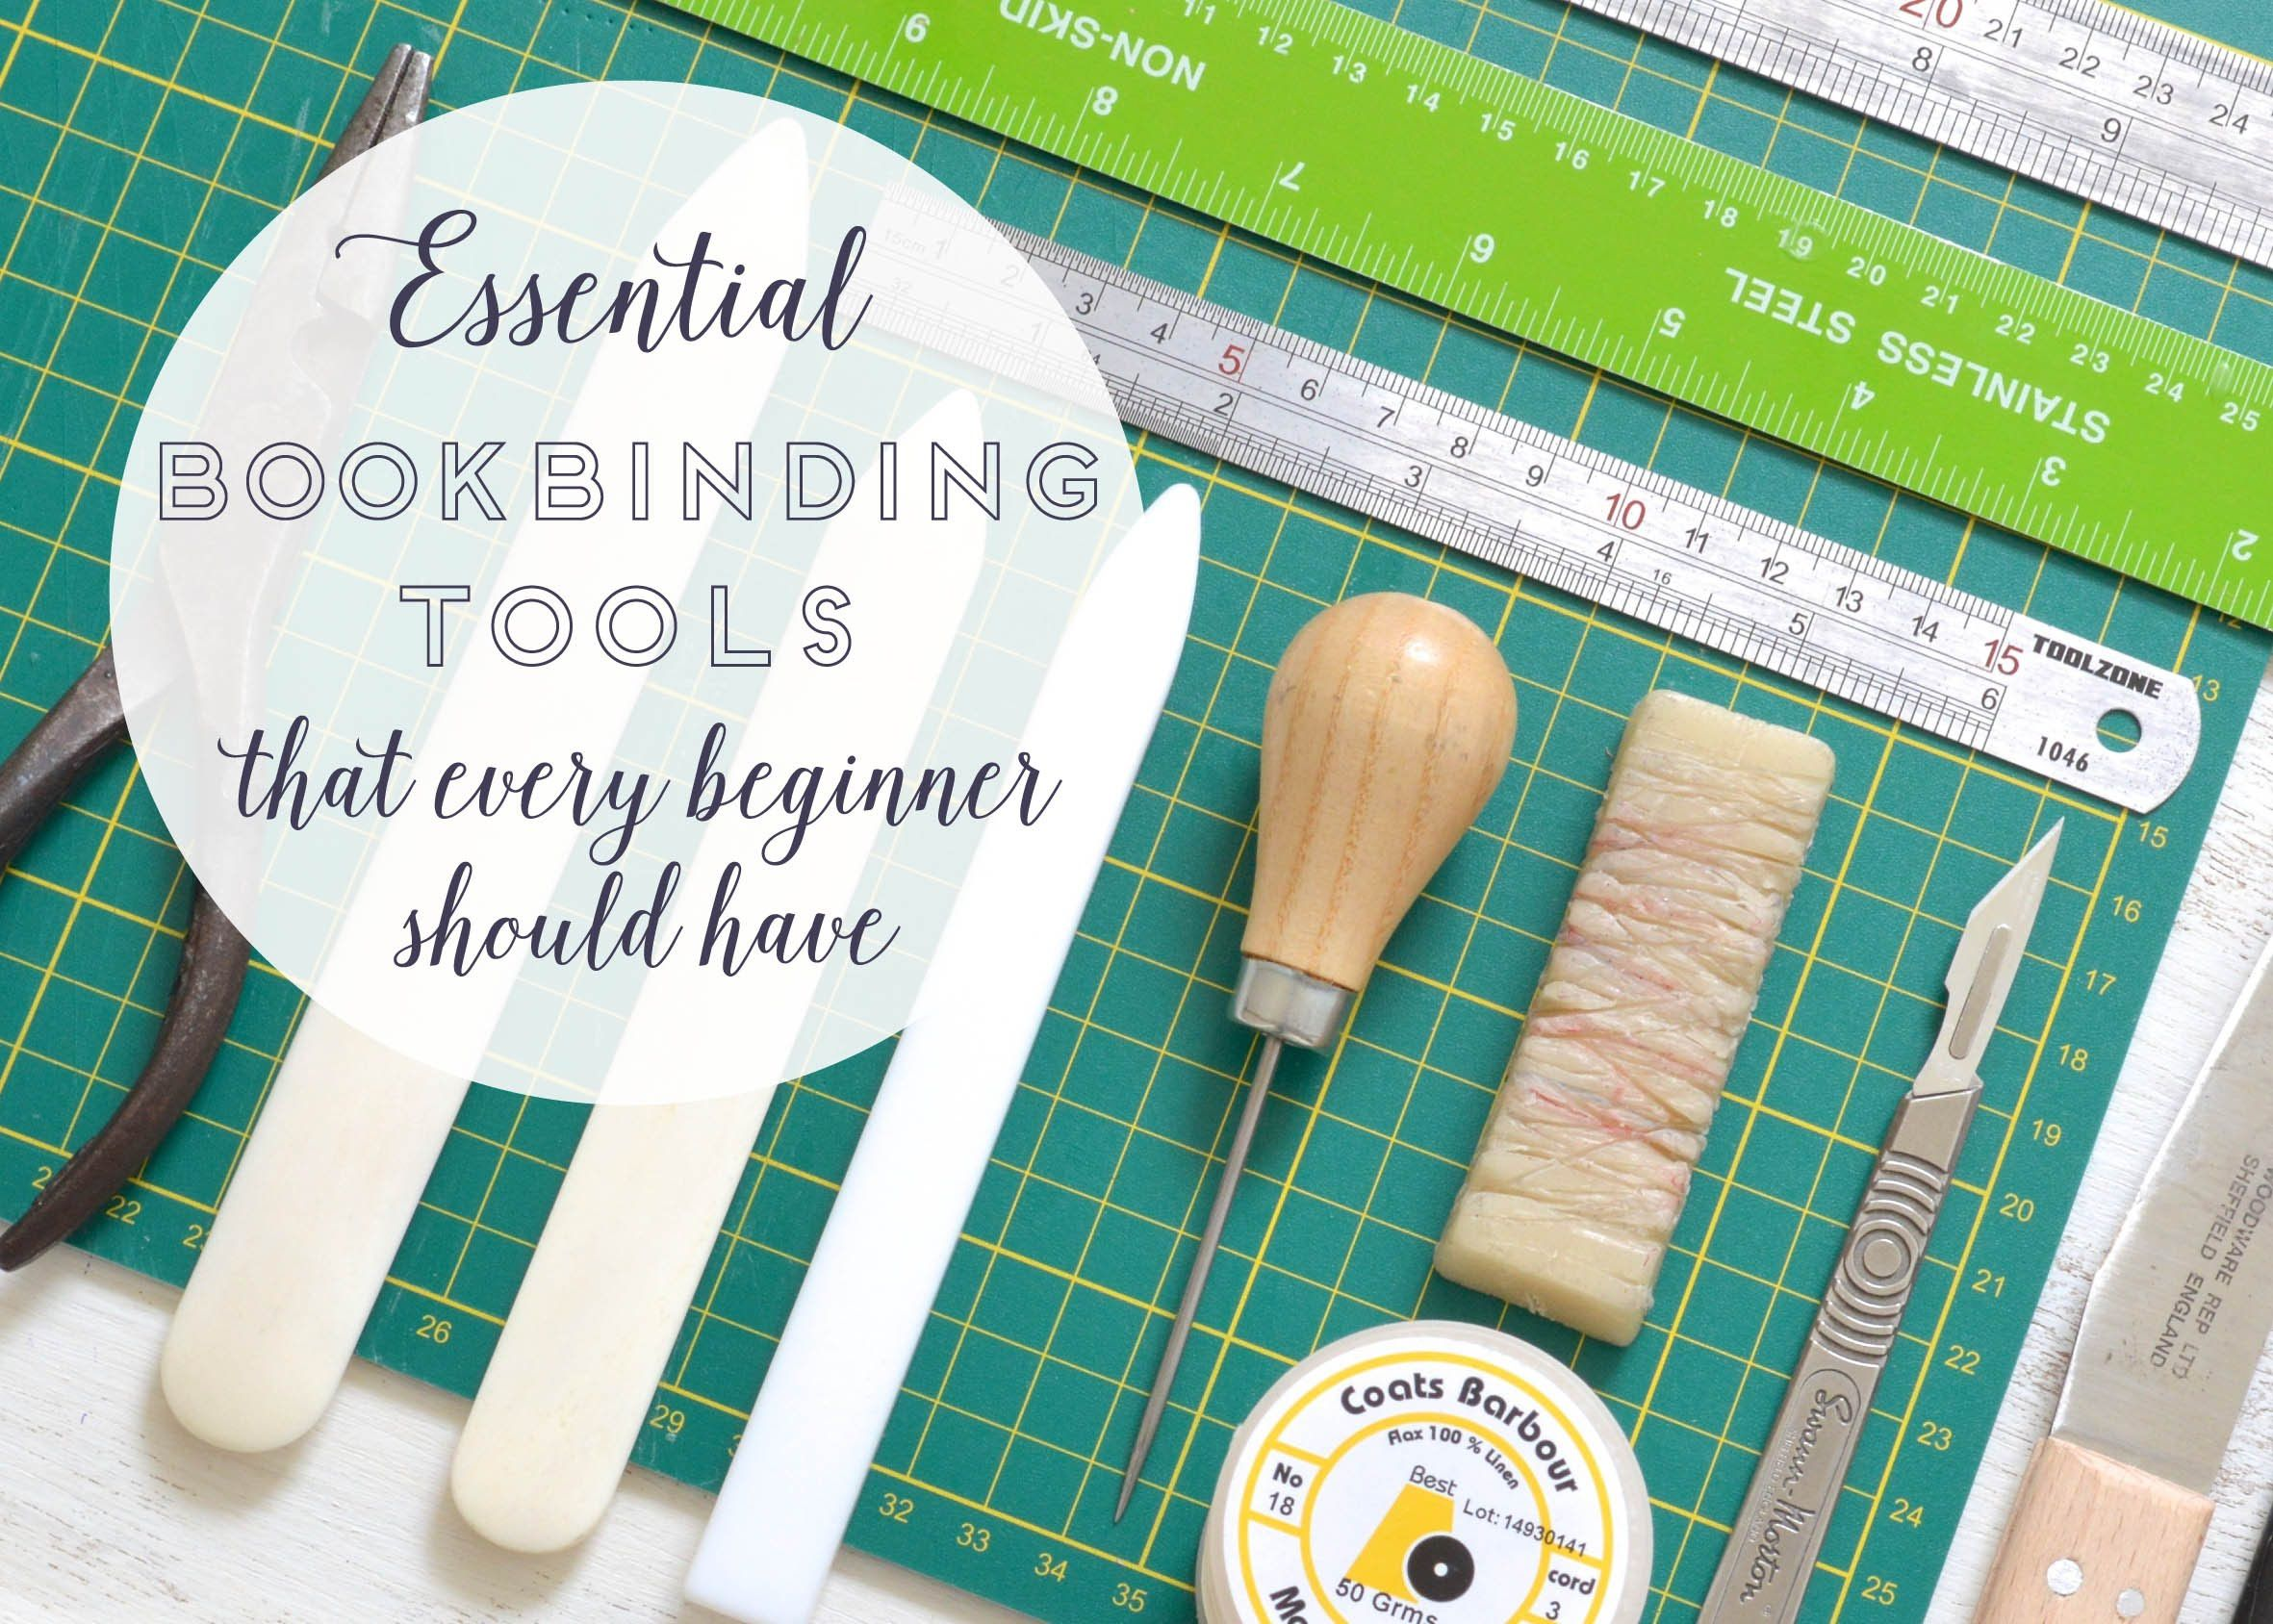 Essential tools that every beginner bookbinder should have